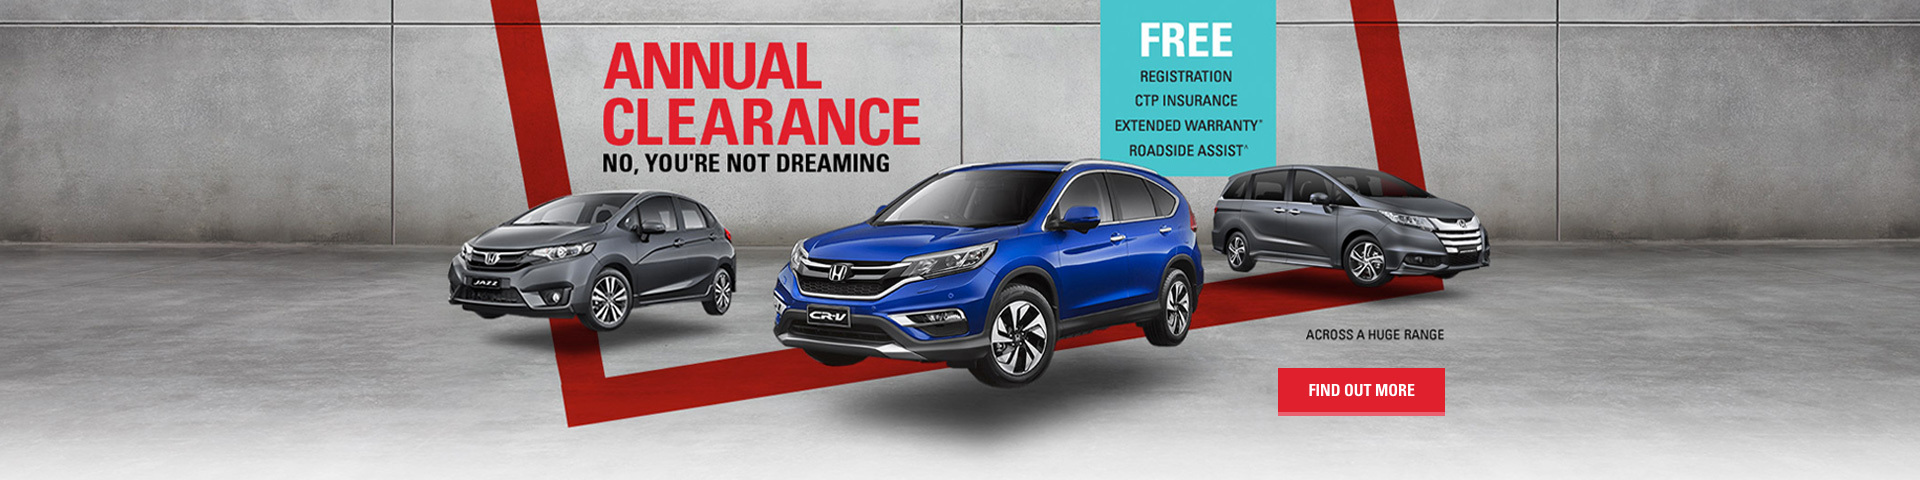 Honday - National Offer - Annual Clearance. No you're not dreaming